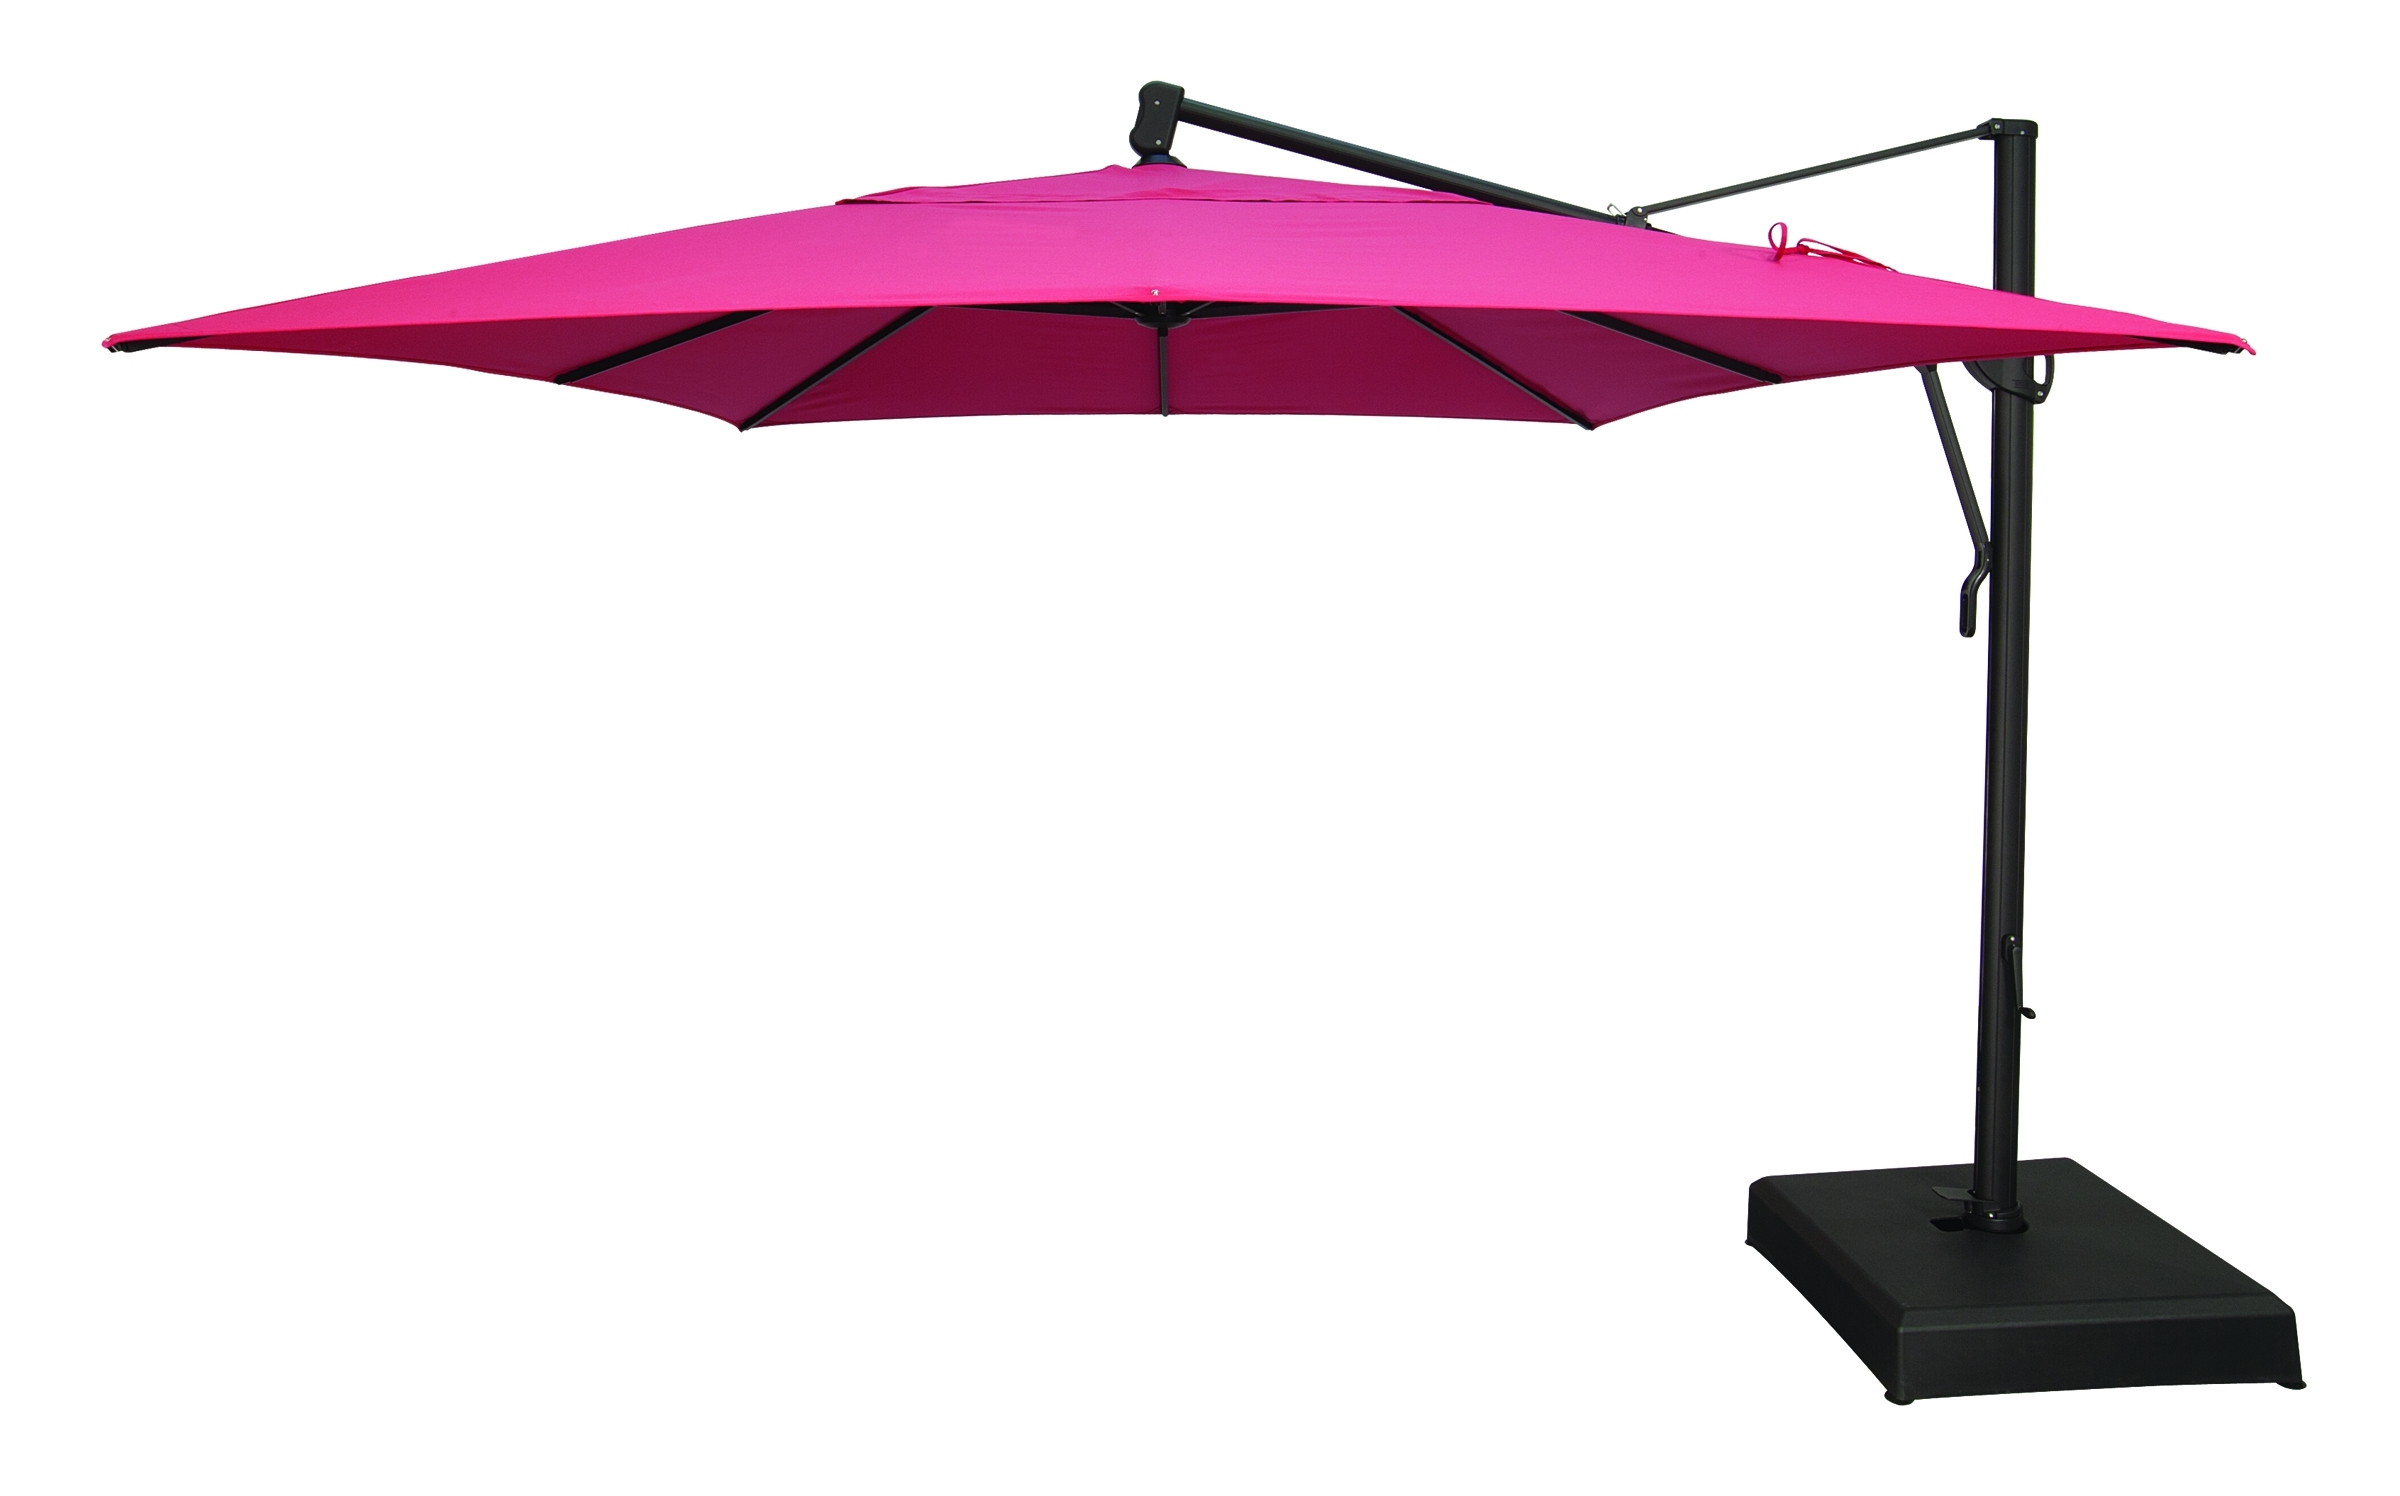 Well Known Pink Patio Umbrellas Regarding Pink Fabric Outdoor Umbrella With Black Iron Base And Swing Arm Of (View 19 of 20)